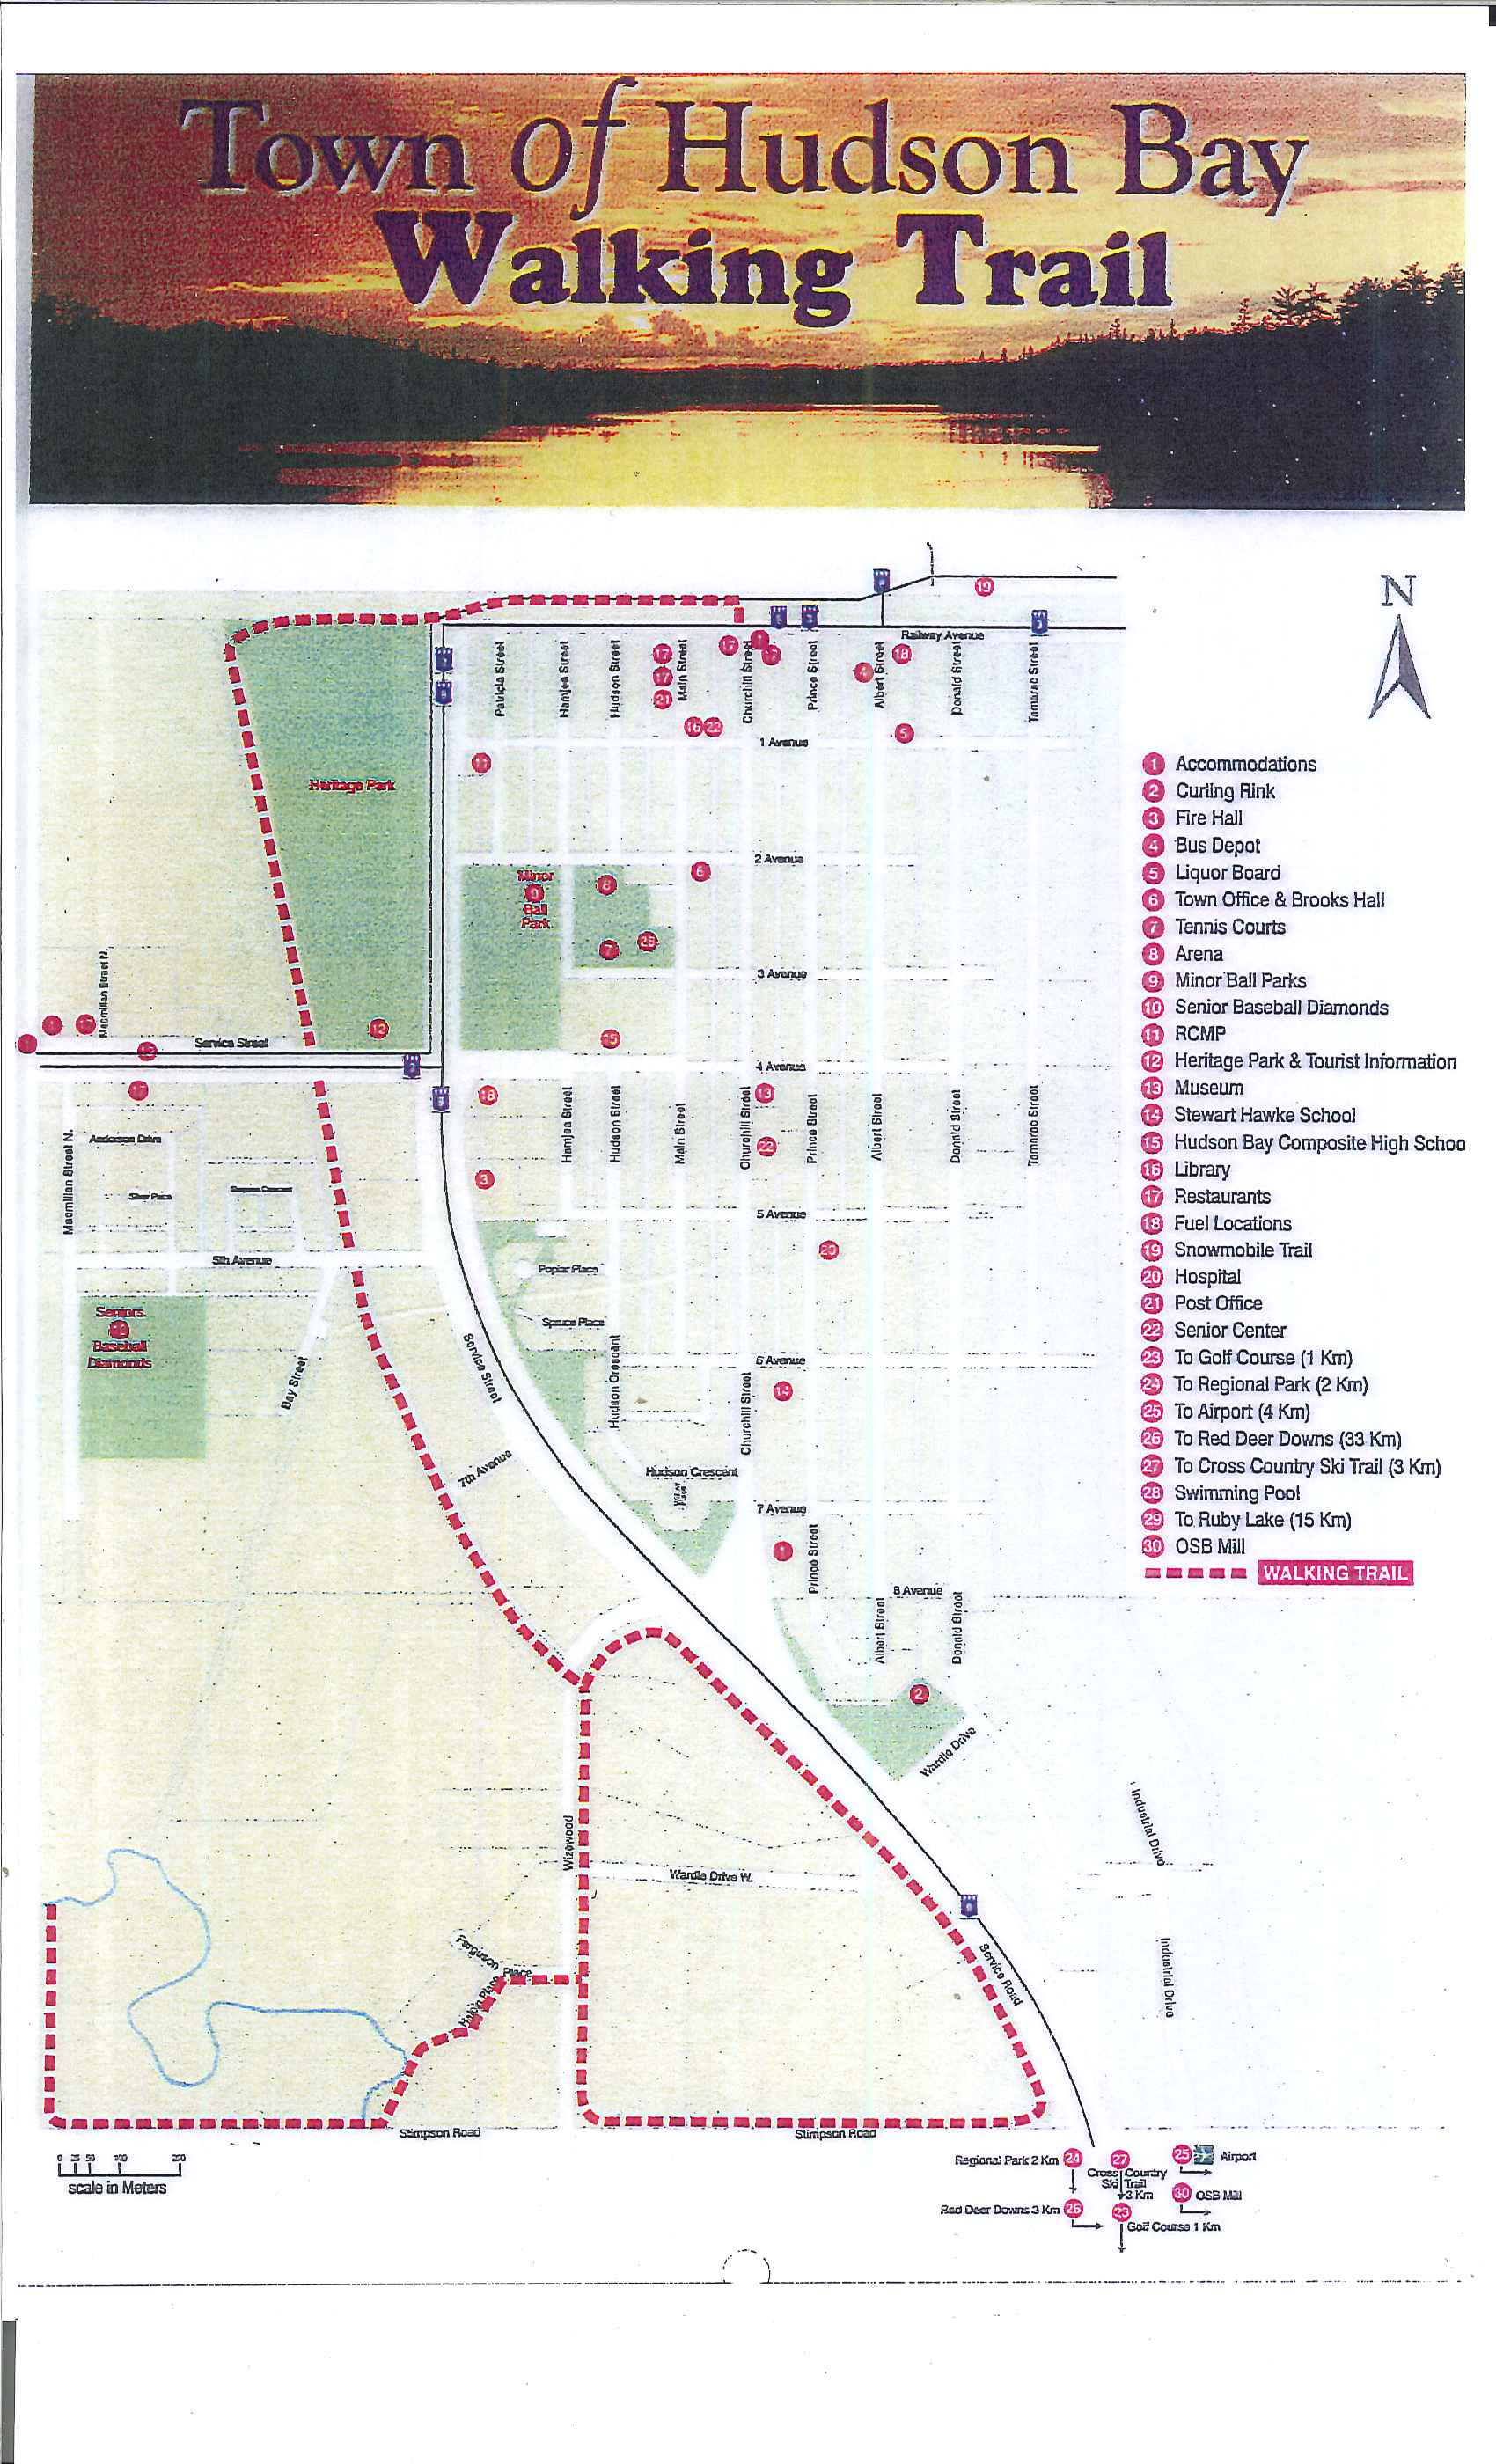 WalkingTrail Map